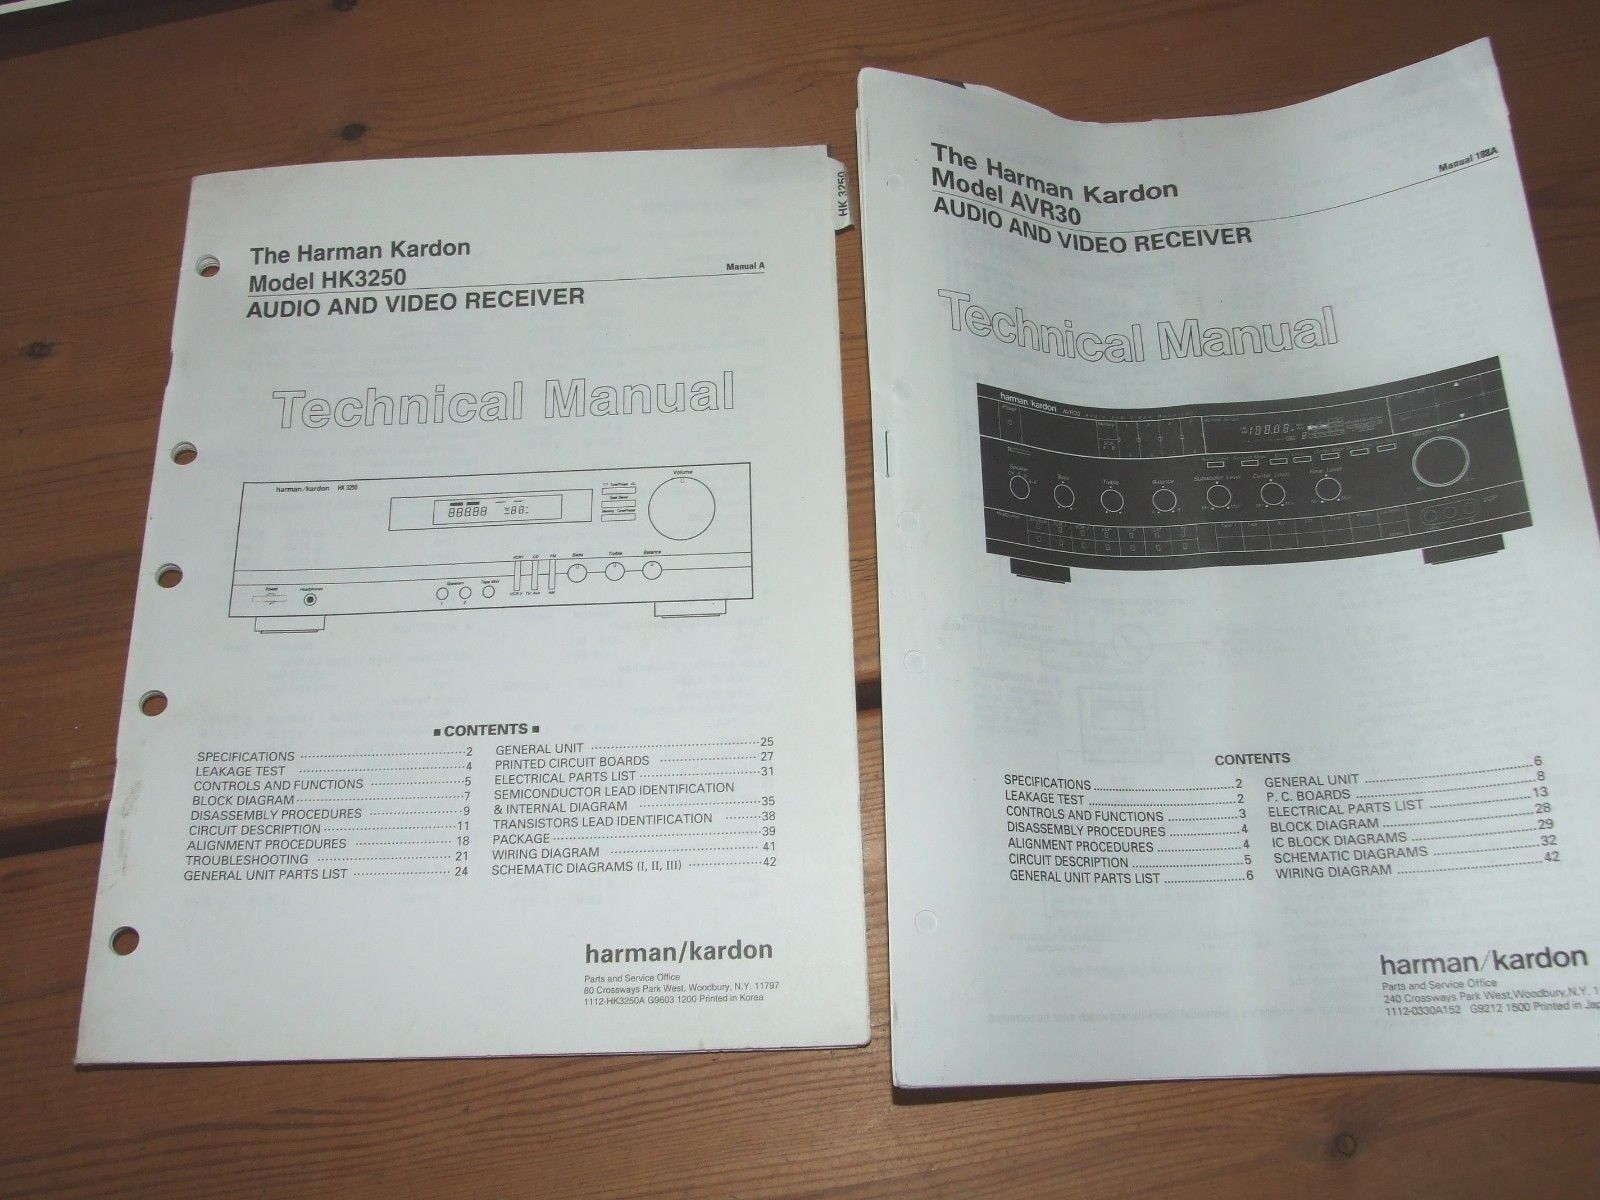 Service Manuals Harman Kardon Hk3250 And Avr30 Schematics Repair Wiring Diagrams Book 1 Of 1only Available